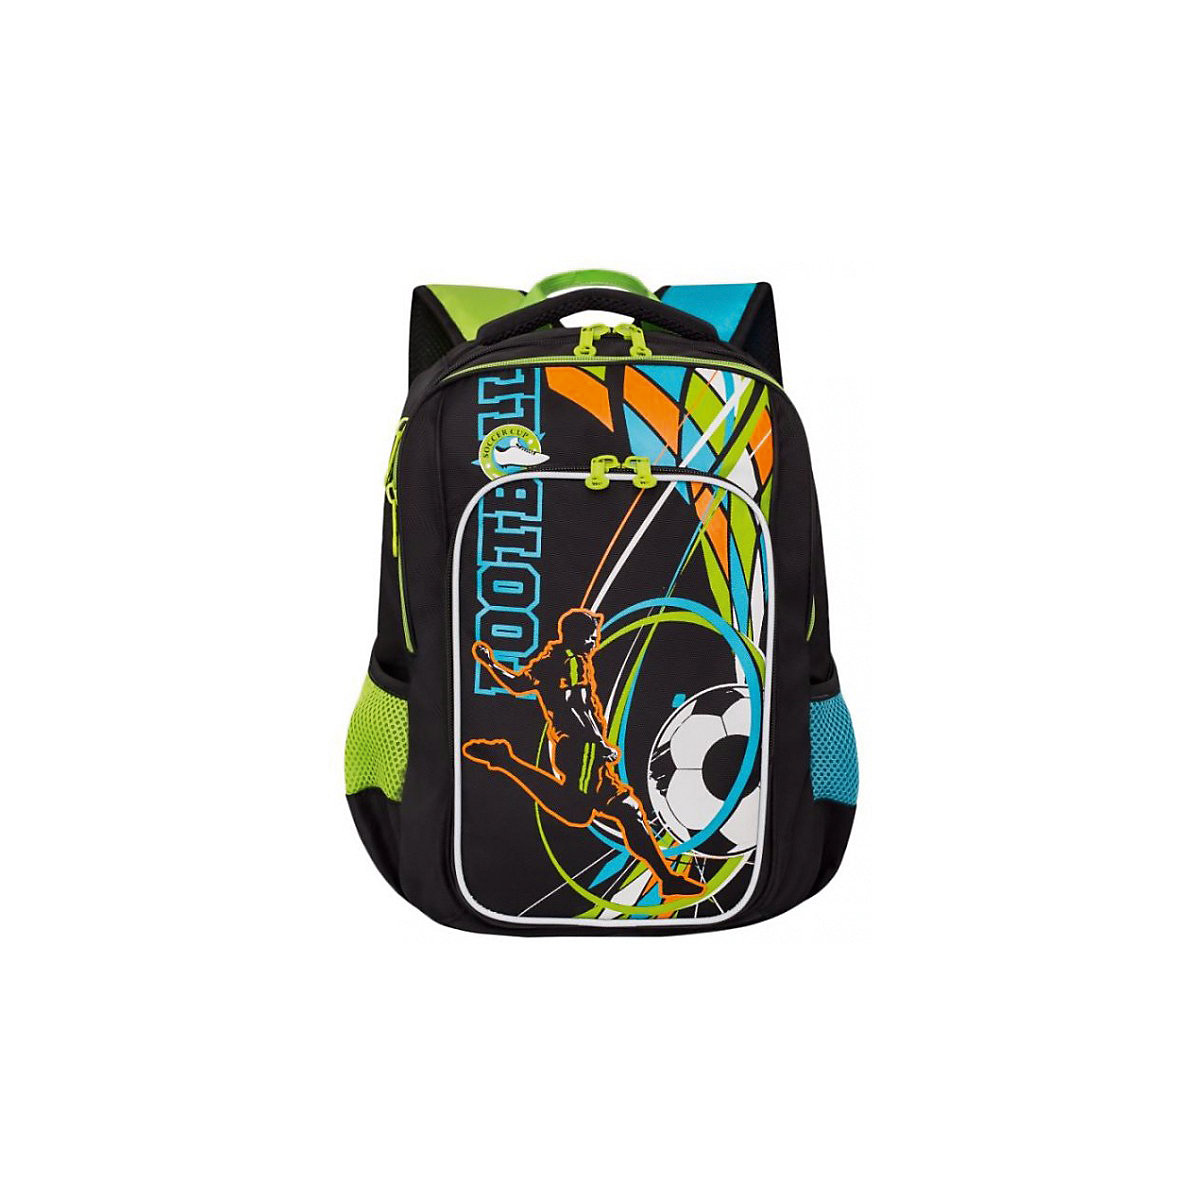 School Bags GRIZZLY 8333976 schoolbag backpack orthopedic bag for boy and girl animals flowers men business backpacks usb charging design school backpack for teenagers laptop mochila anti theft bags for trip drop shipping